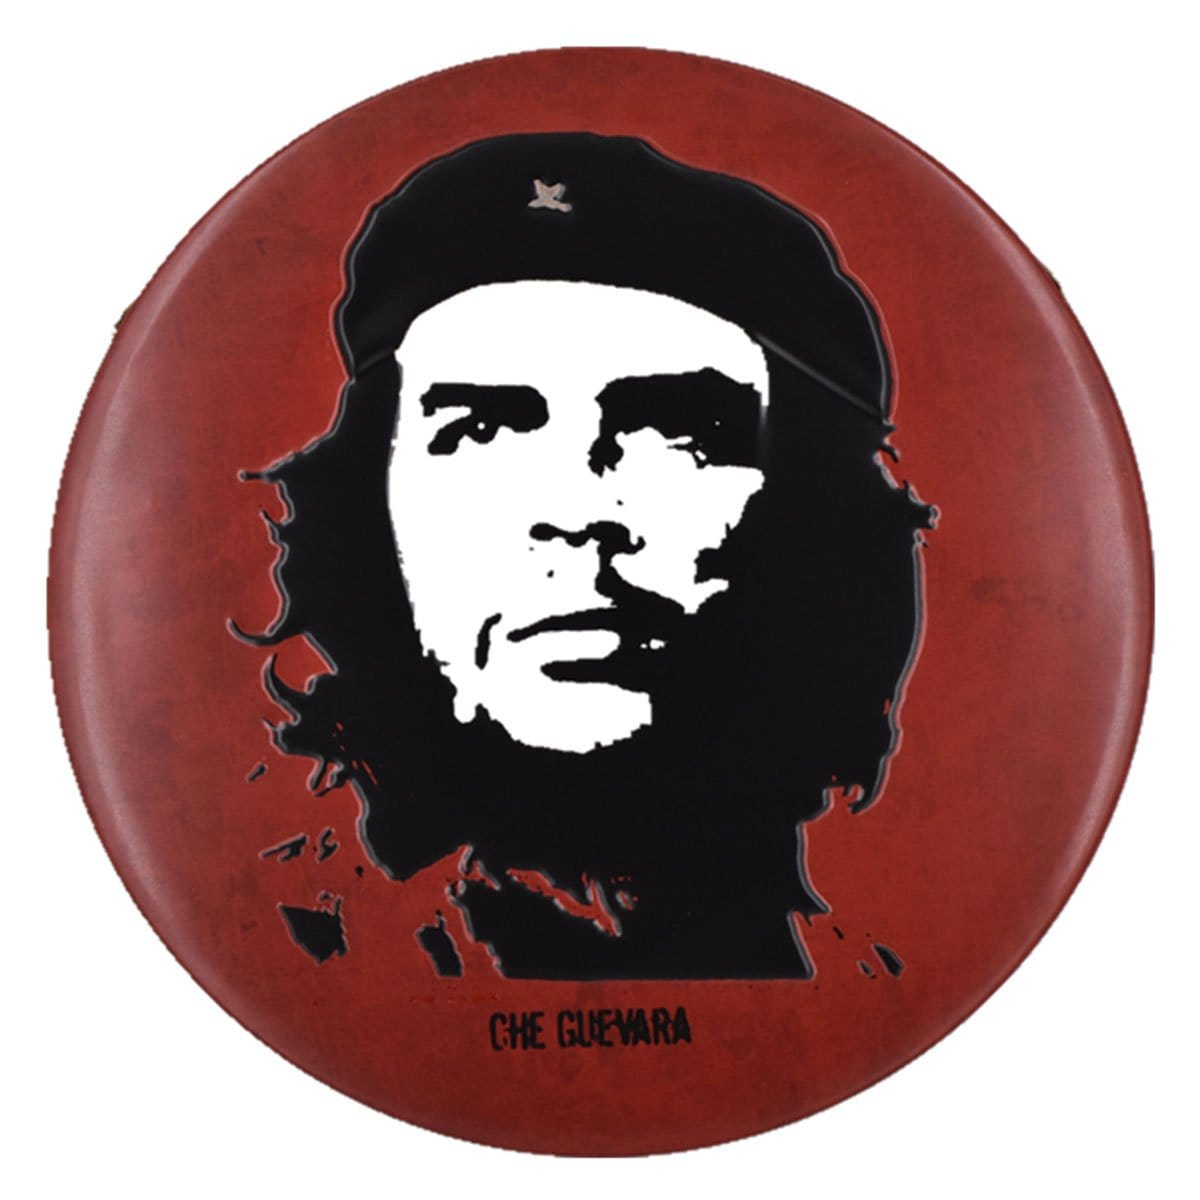 Che Guevara Round Embossed Metal Tin Sign Poster